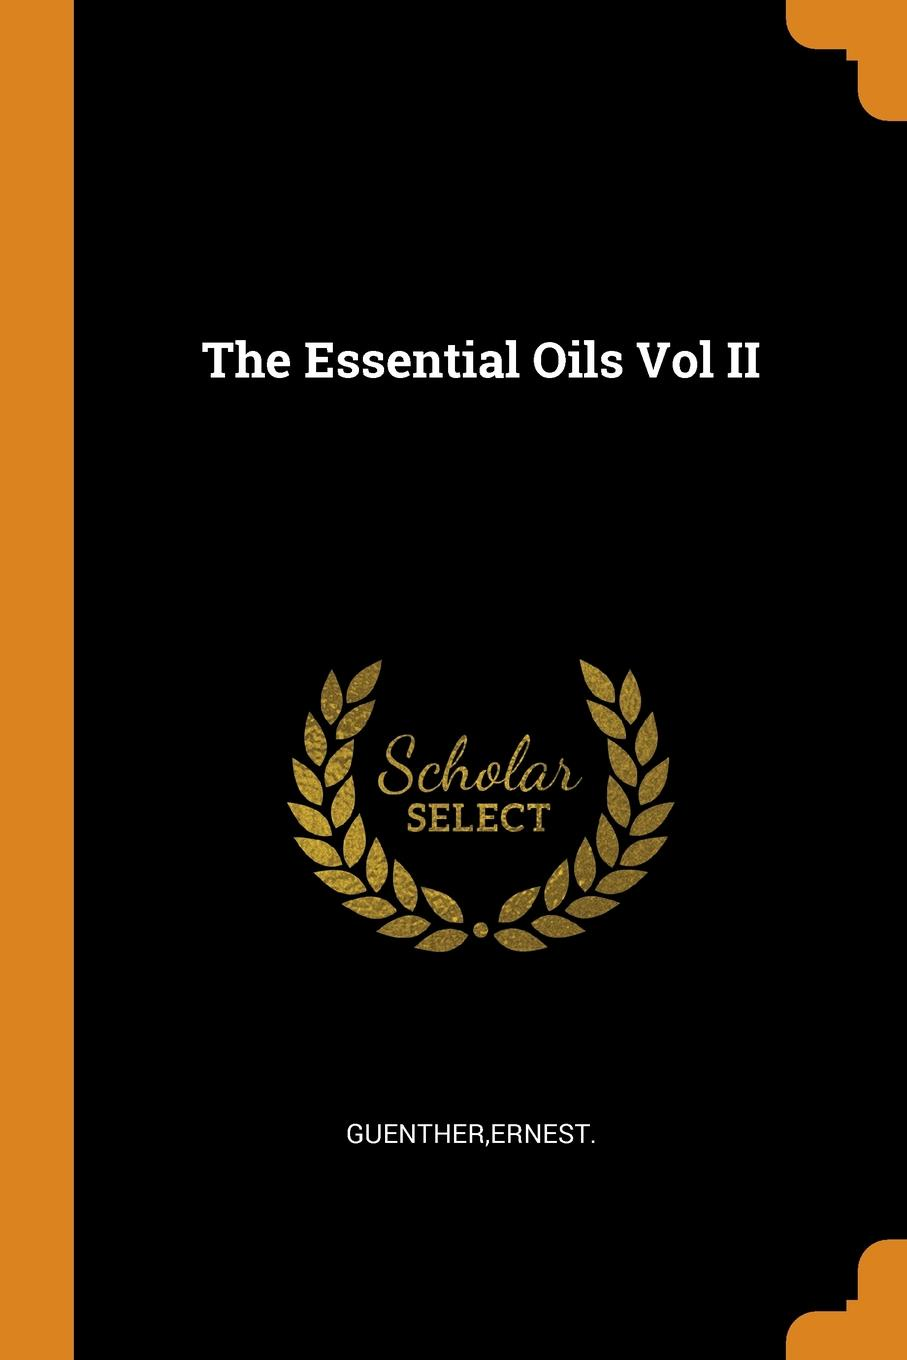 Ernest Guenther. The Essential Oils Vol II